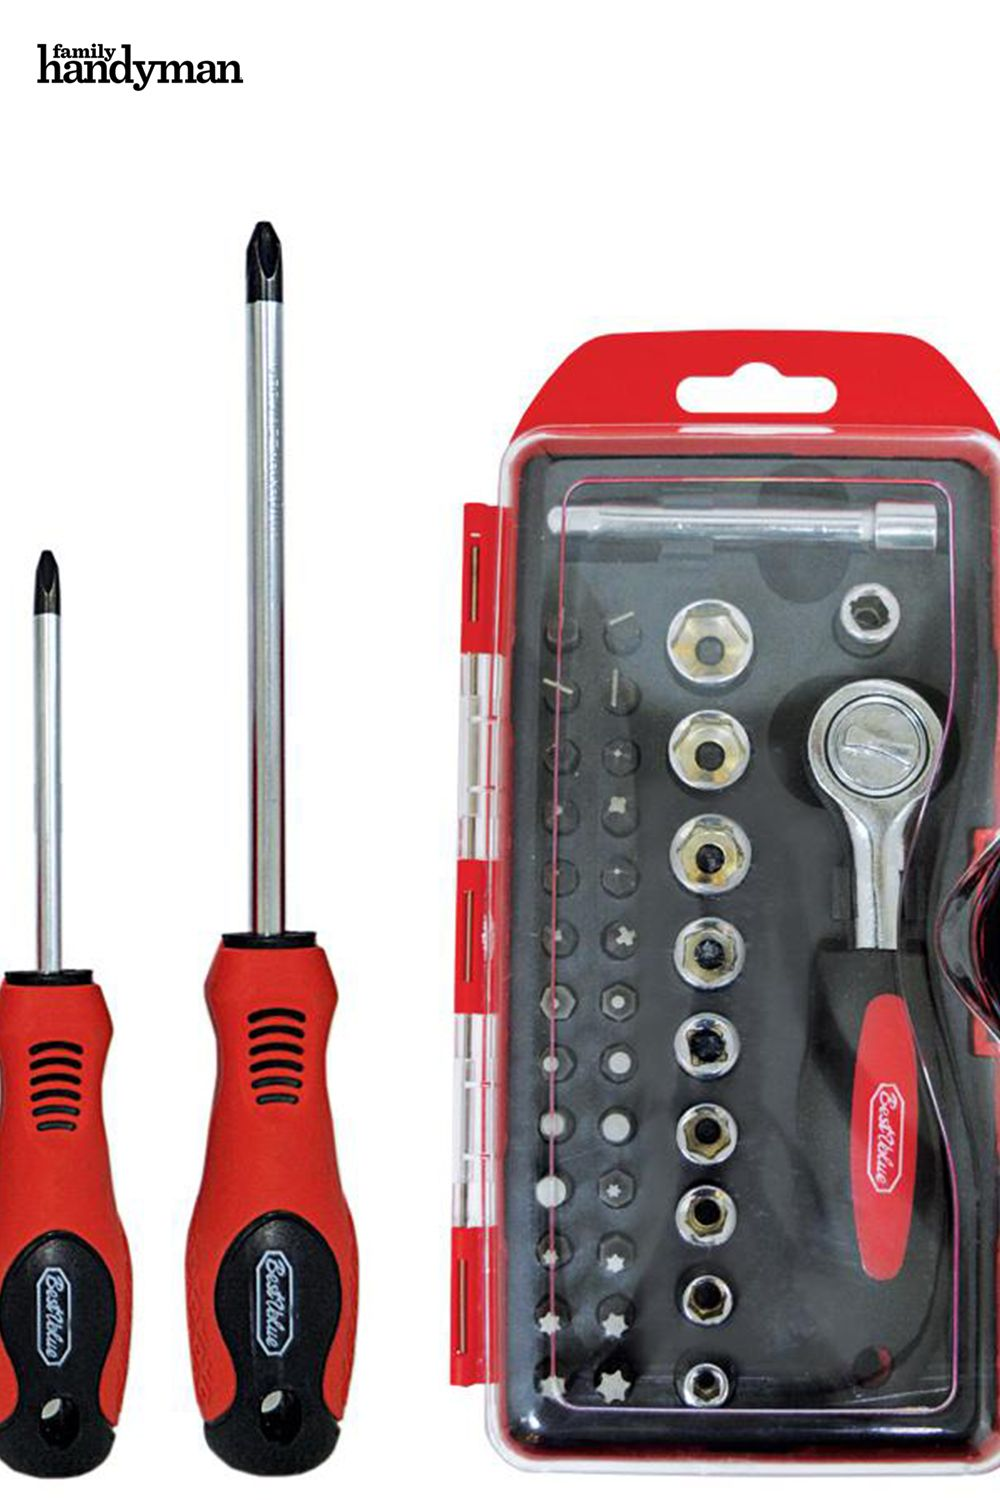 8 Best Value Hand Tools You Can Find at Home Depot in 2020